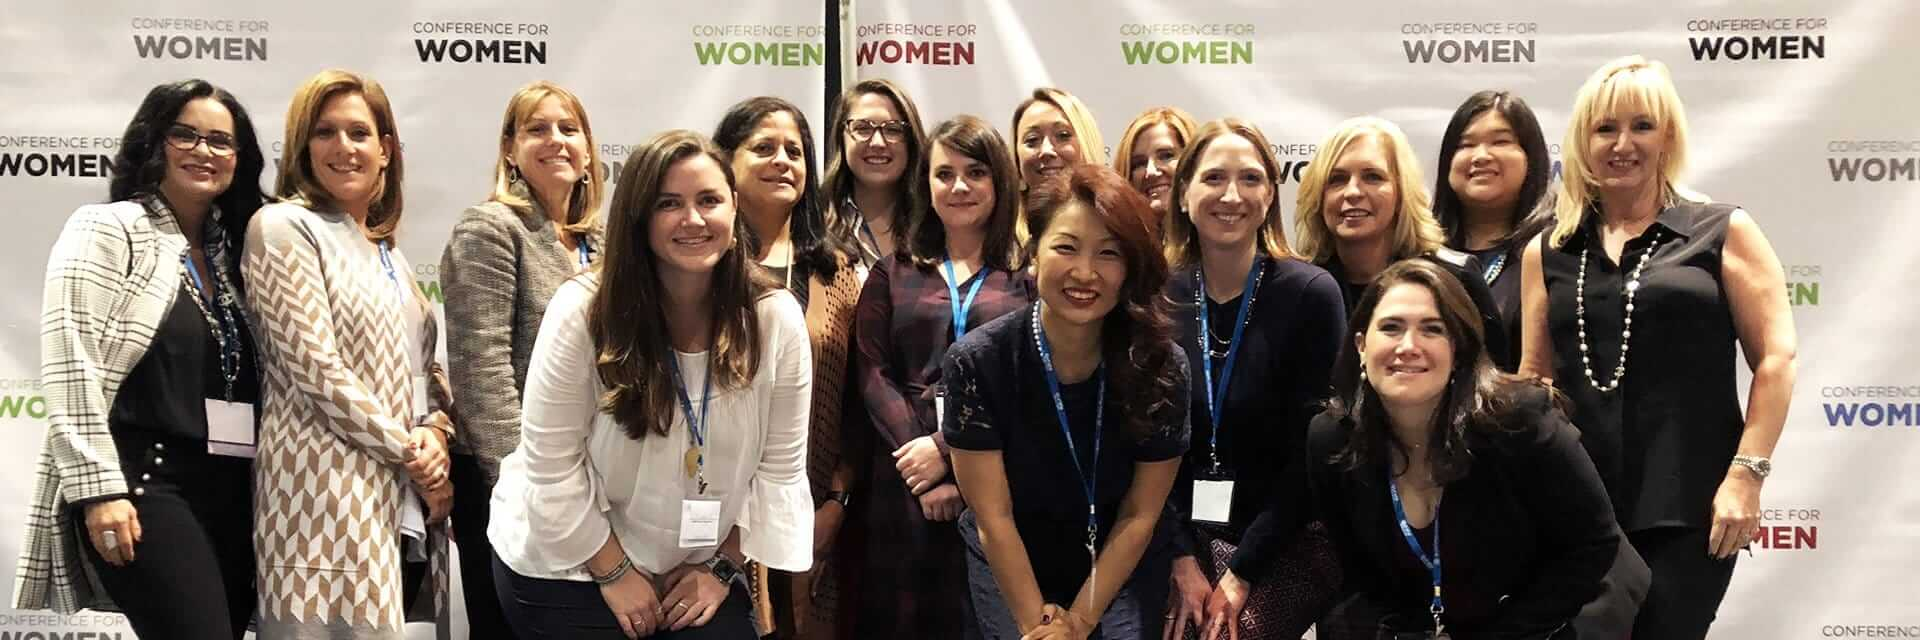 Group of female Penn Mutual associates pose for a photo in front of an advertisement banner during an event.